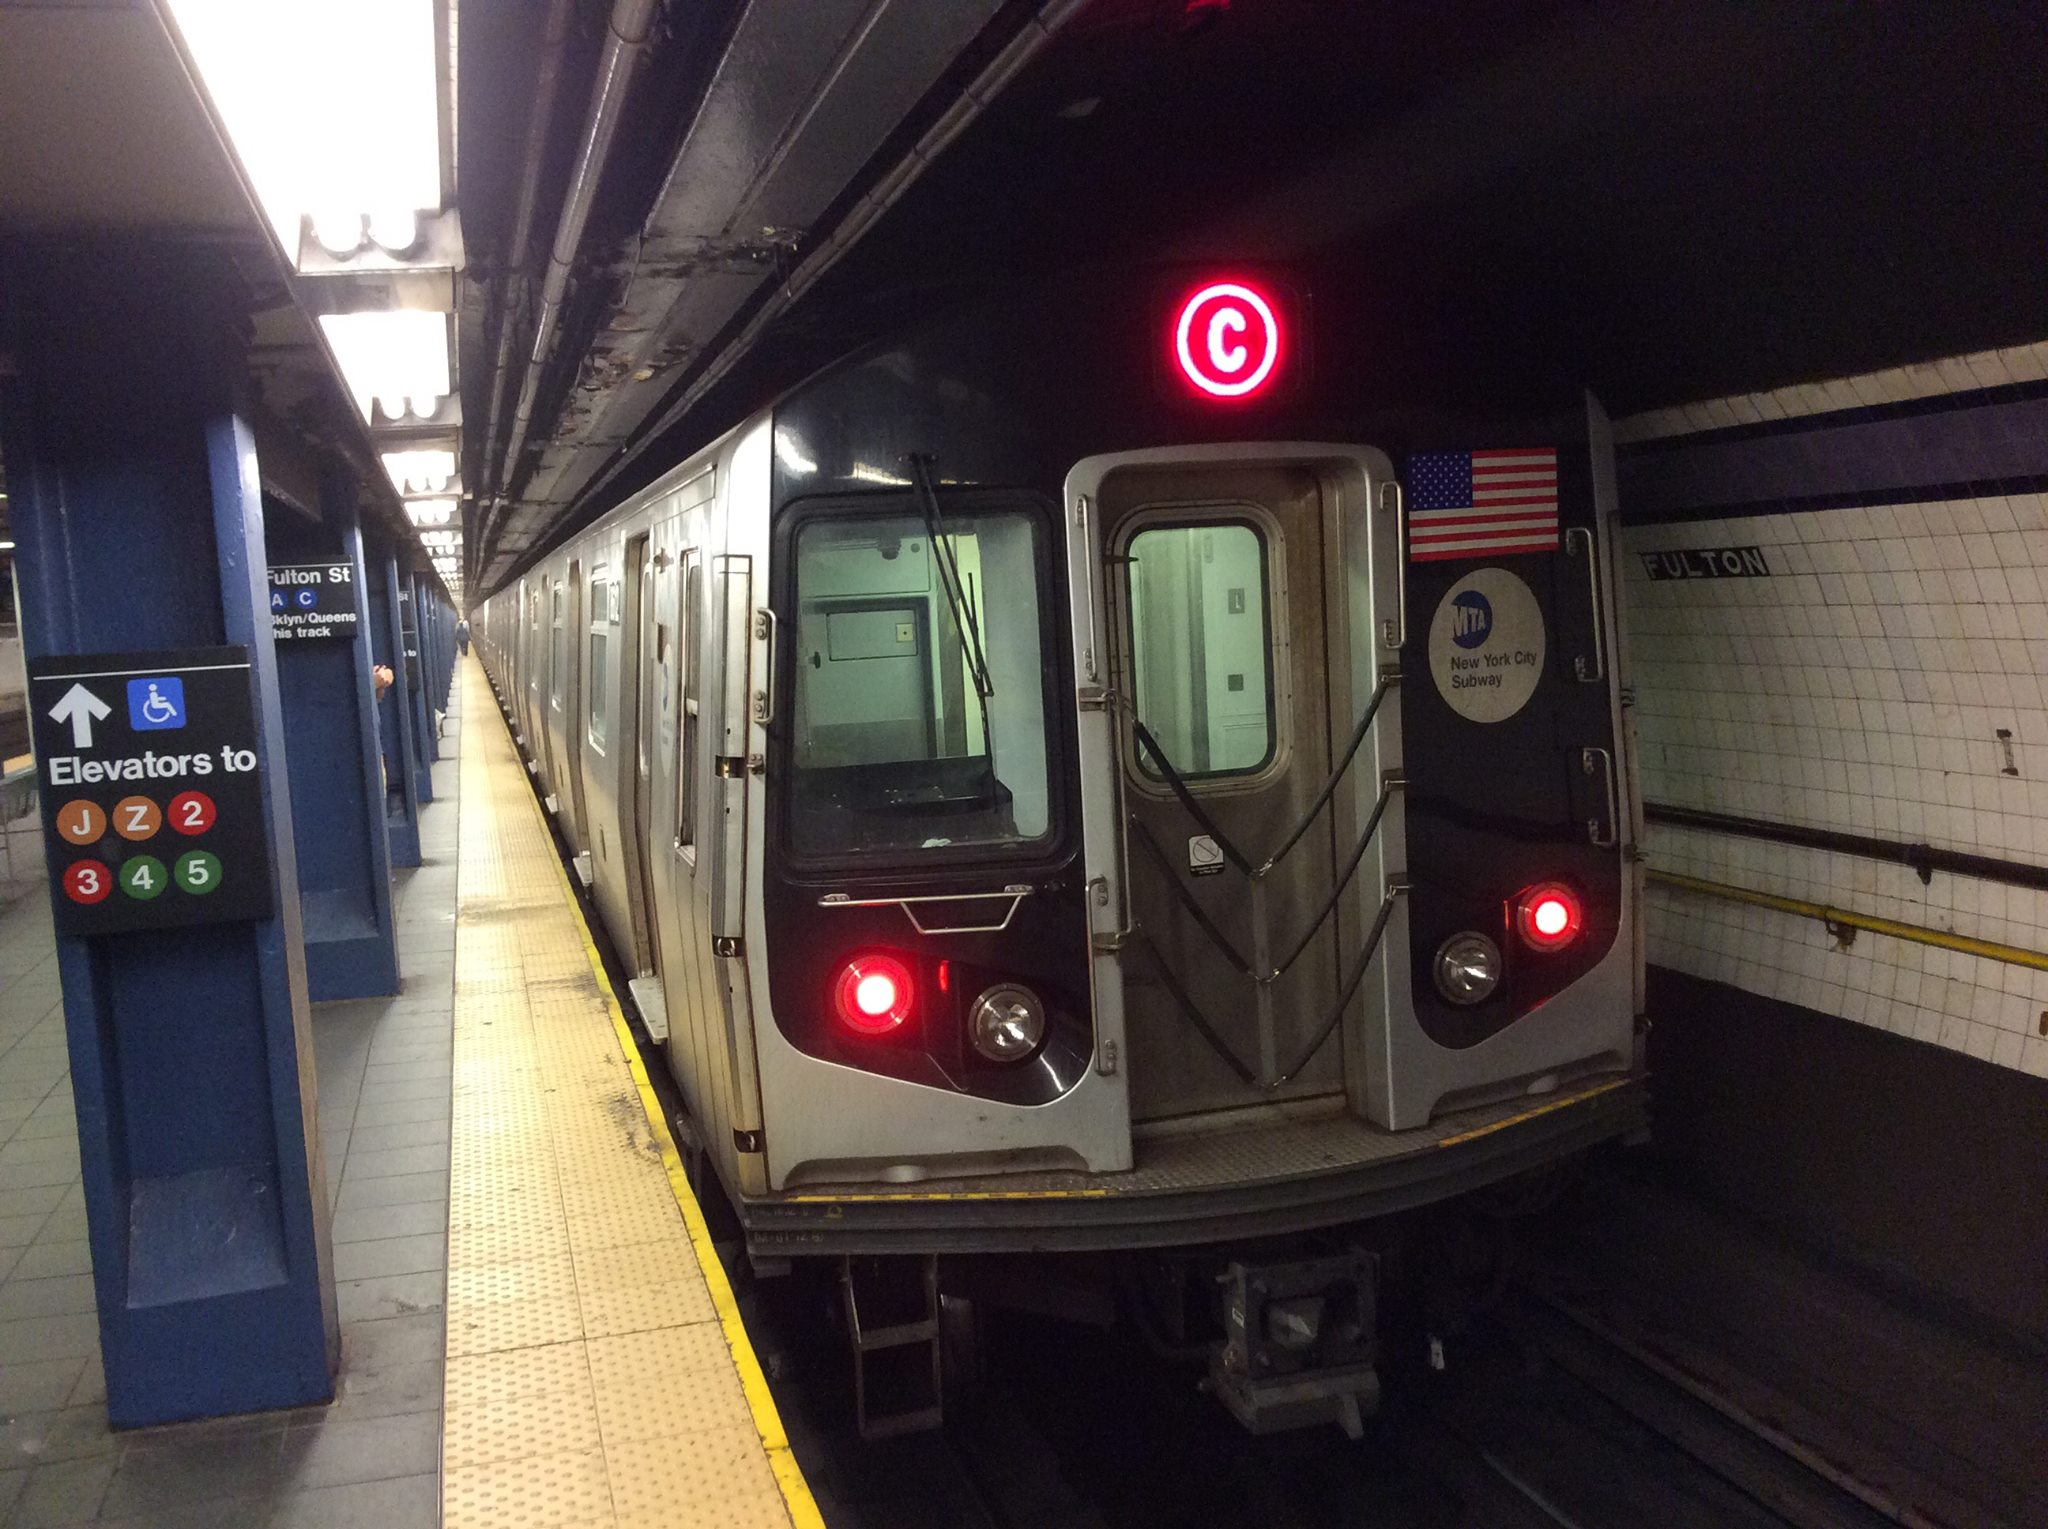 R160A C train at Fulton Street. Photo by JoesphBarbaro/Wikimedia Commons